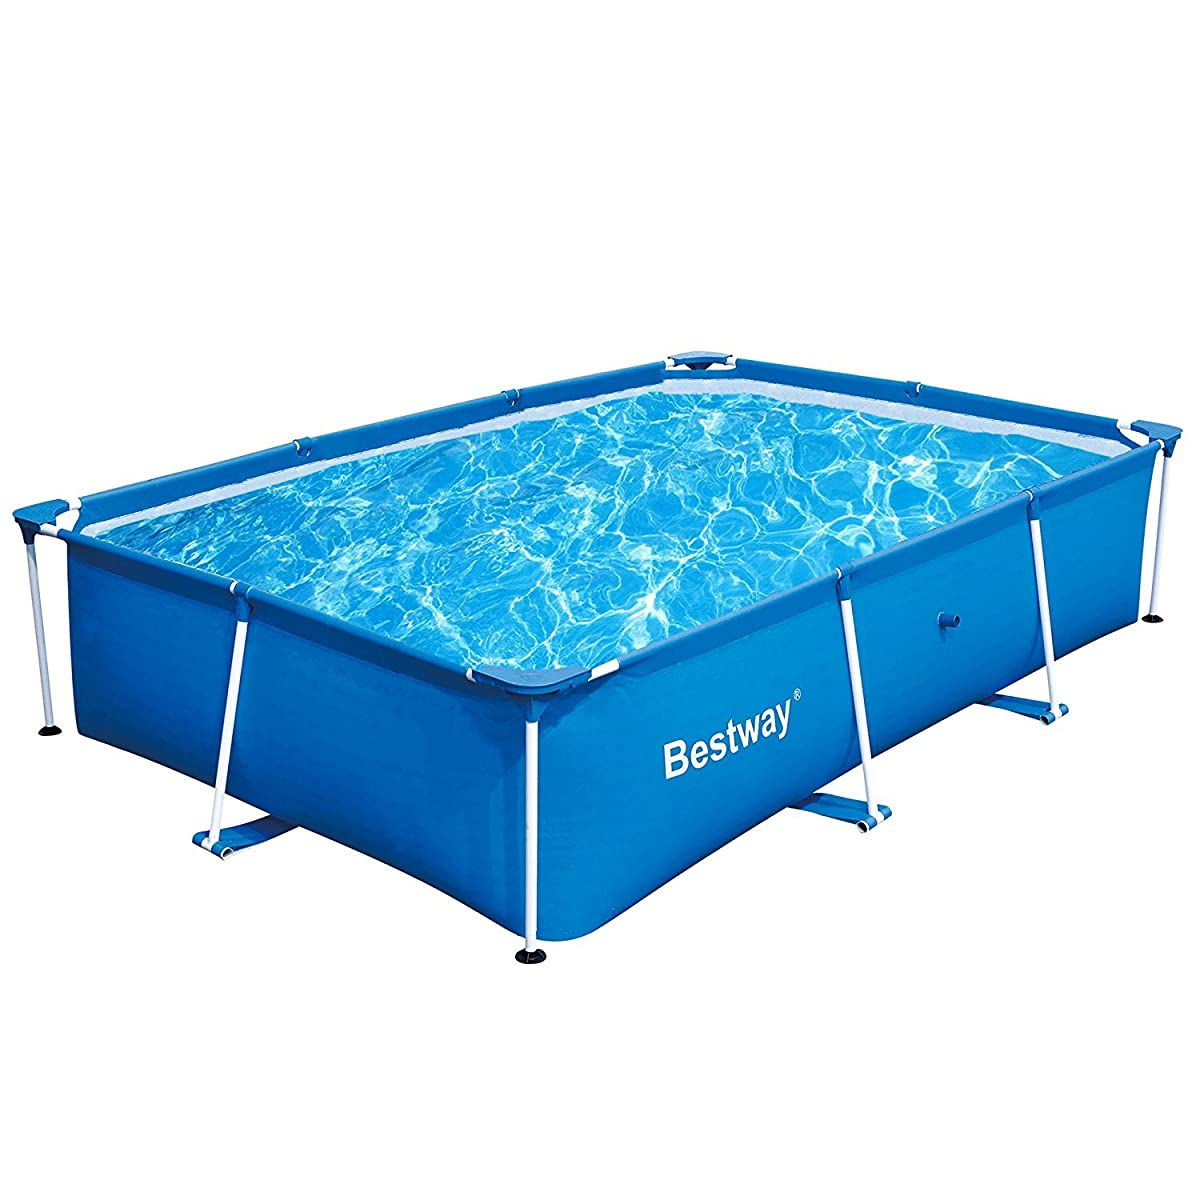 Bestway 118 x 79 x 26 Inches 871 Gallon Deluxe Splash Frame Kids Swimming Pool